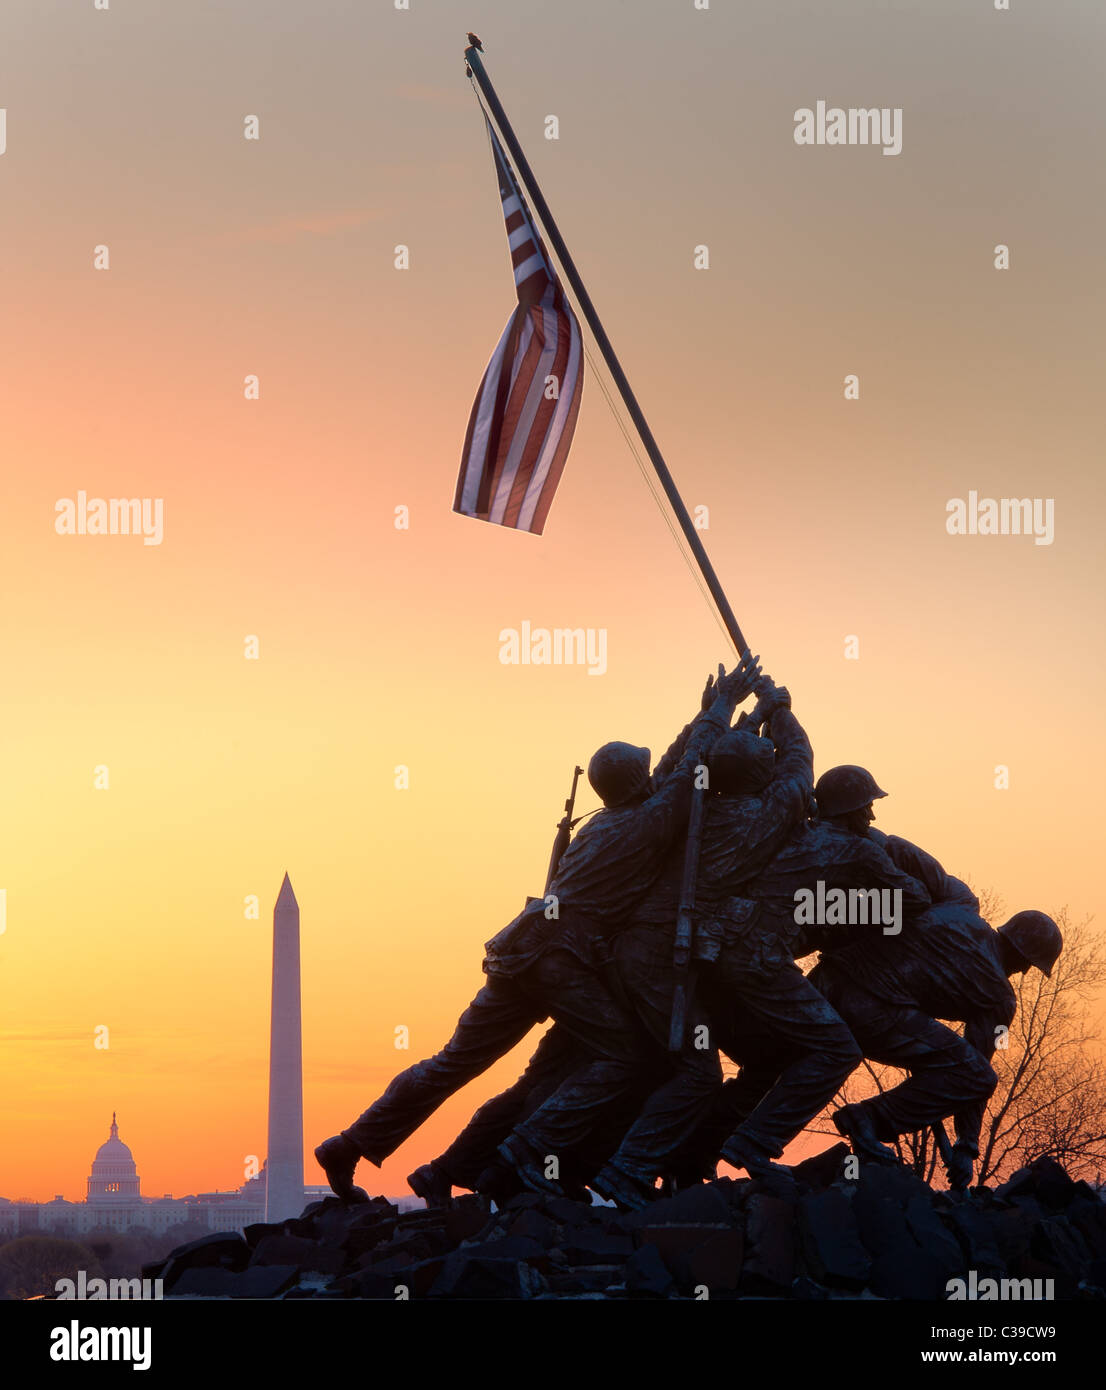 The Marine Corps War Memorial in Arlington, VA at sunrise with the US Capitol and Washington Monument visible - Stock Image